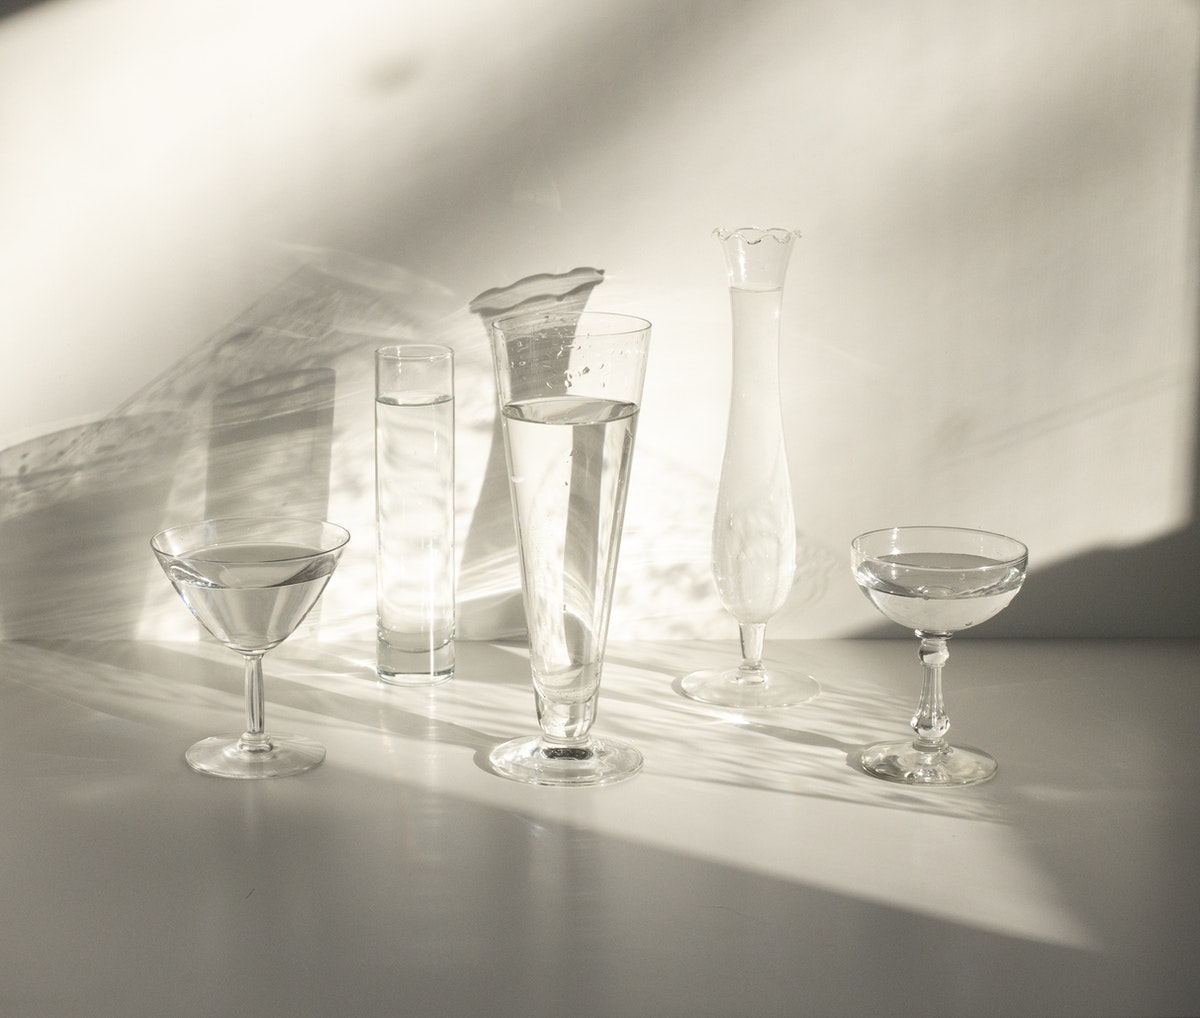 Crystal glasses lined up against a white wall with shadows against the wall. Crystal vases and glasses like this are perfect gifts for a crystal wedding anniversary.